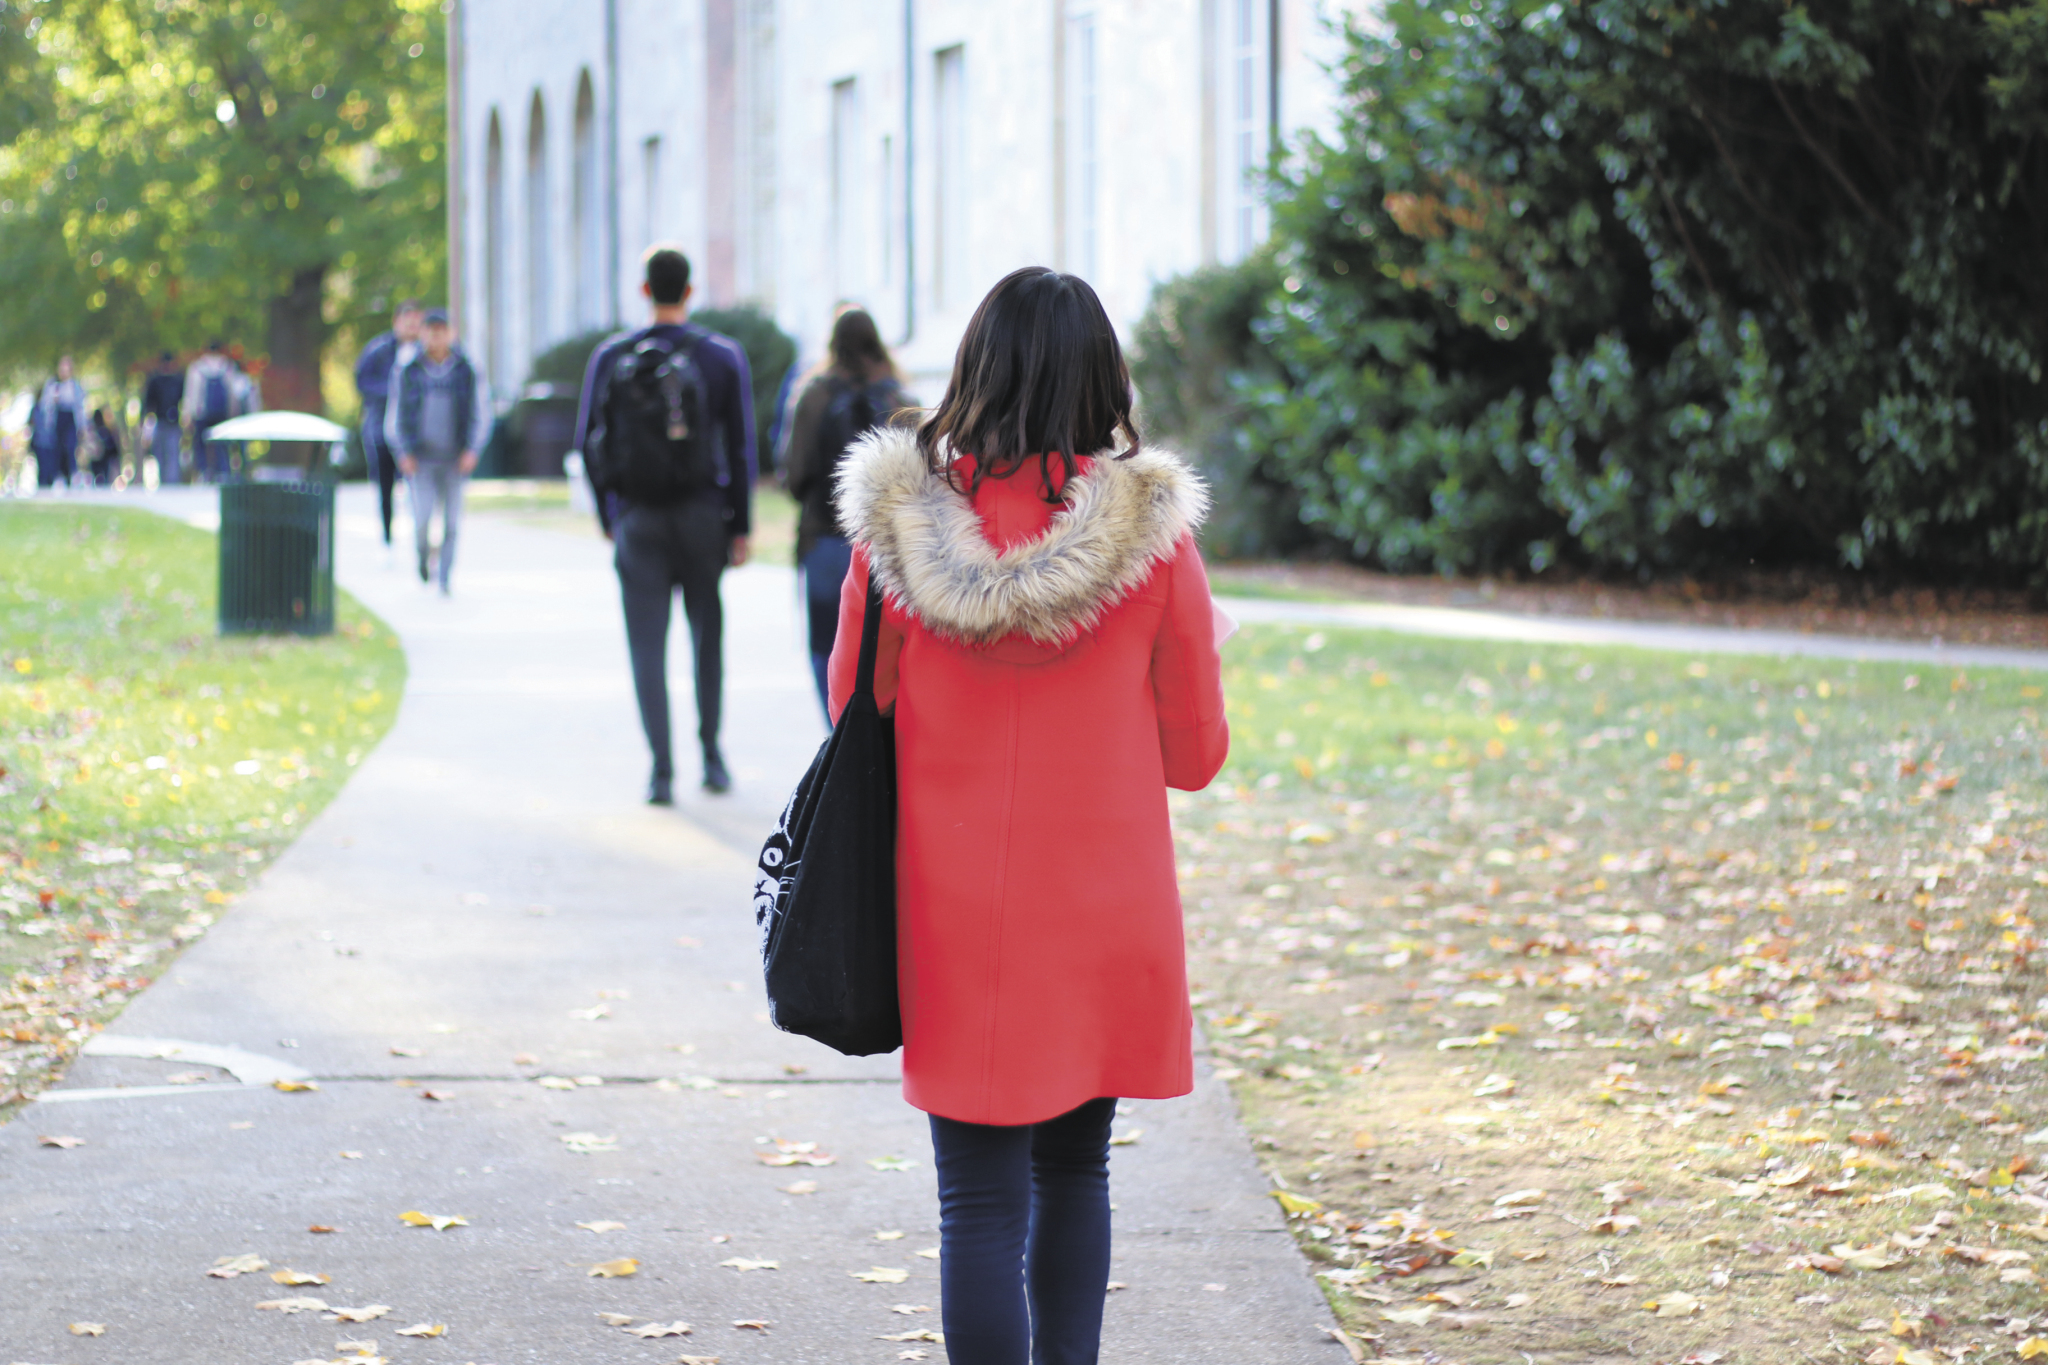 Winter Fashion | The Weather is Getting Cooler and so Should You